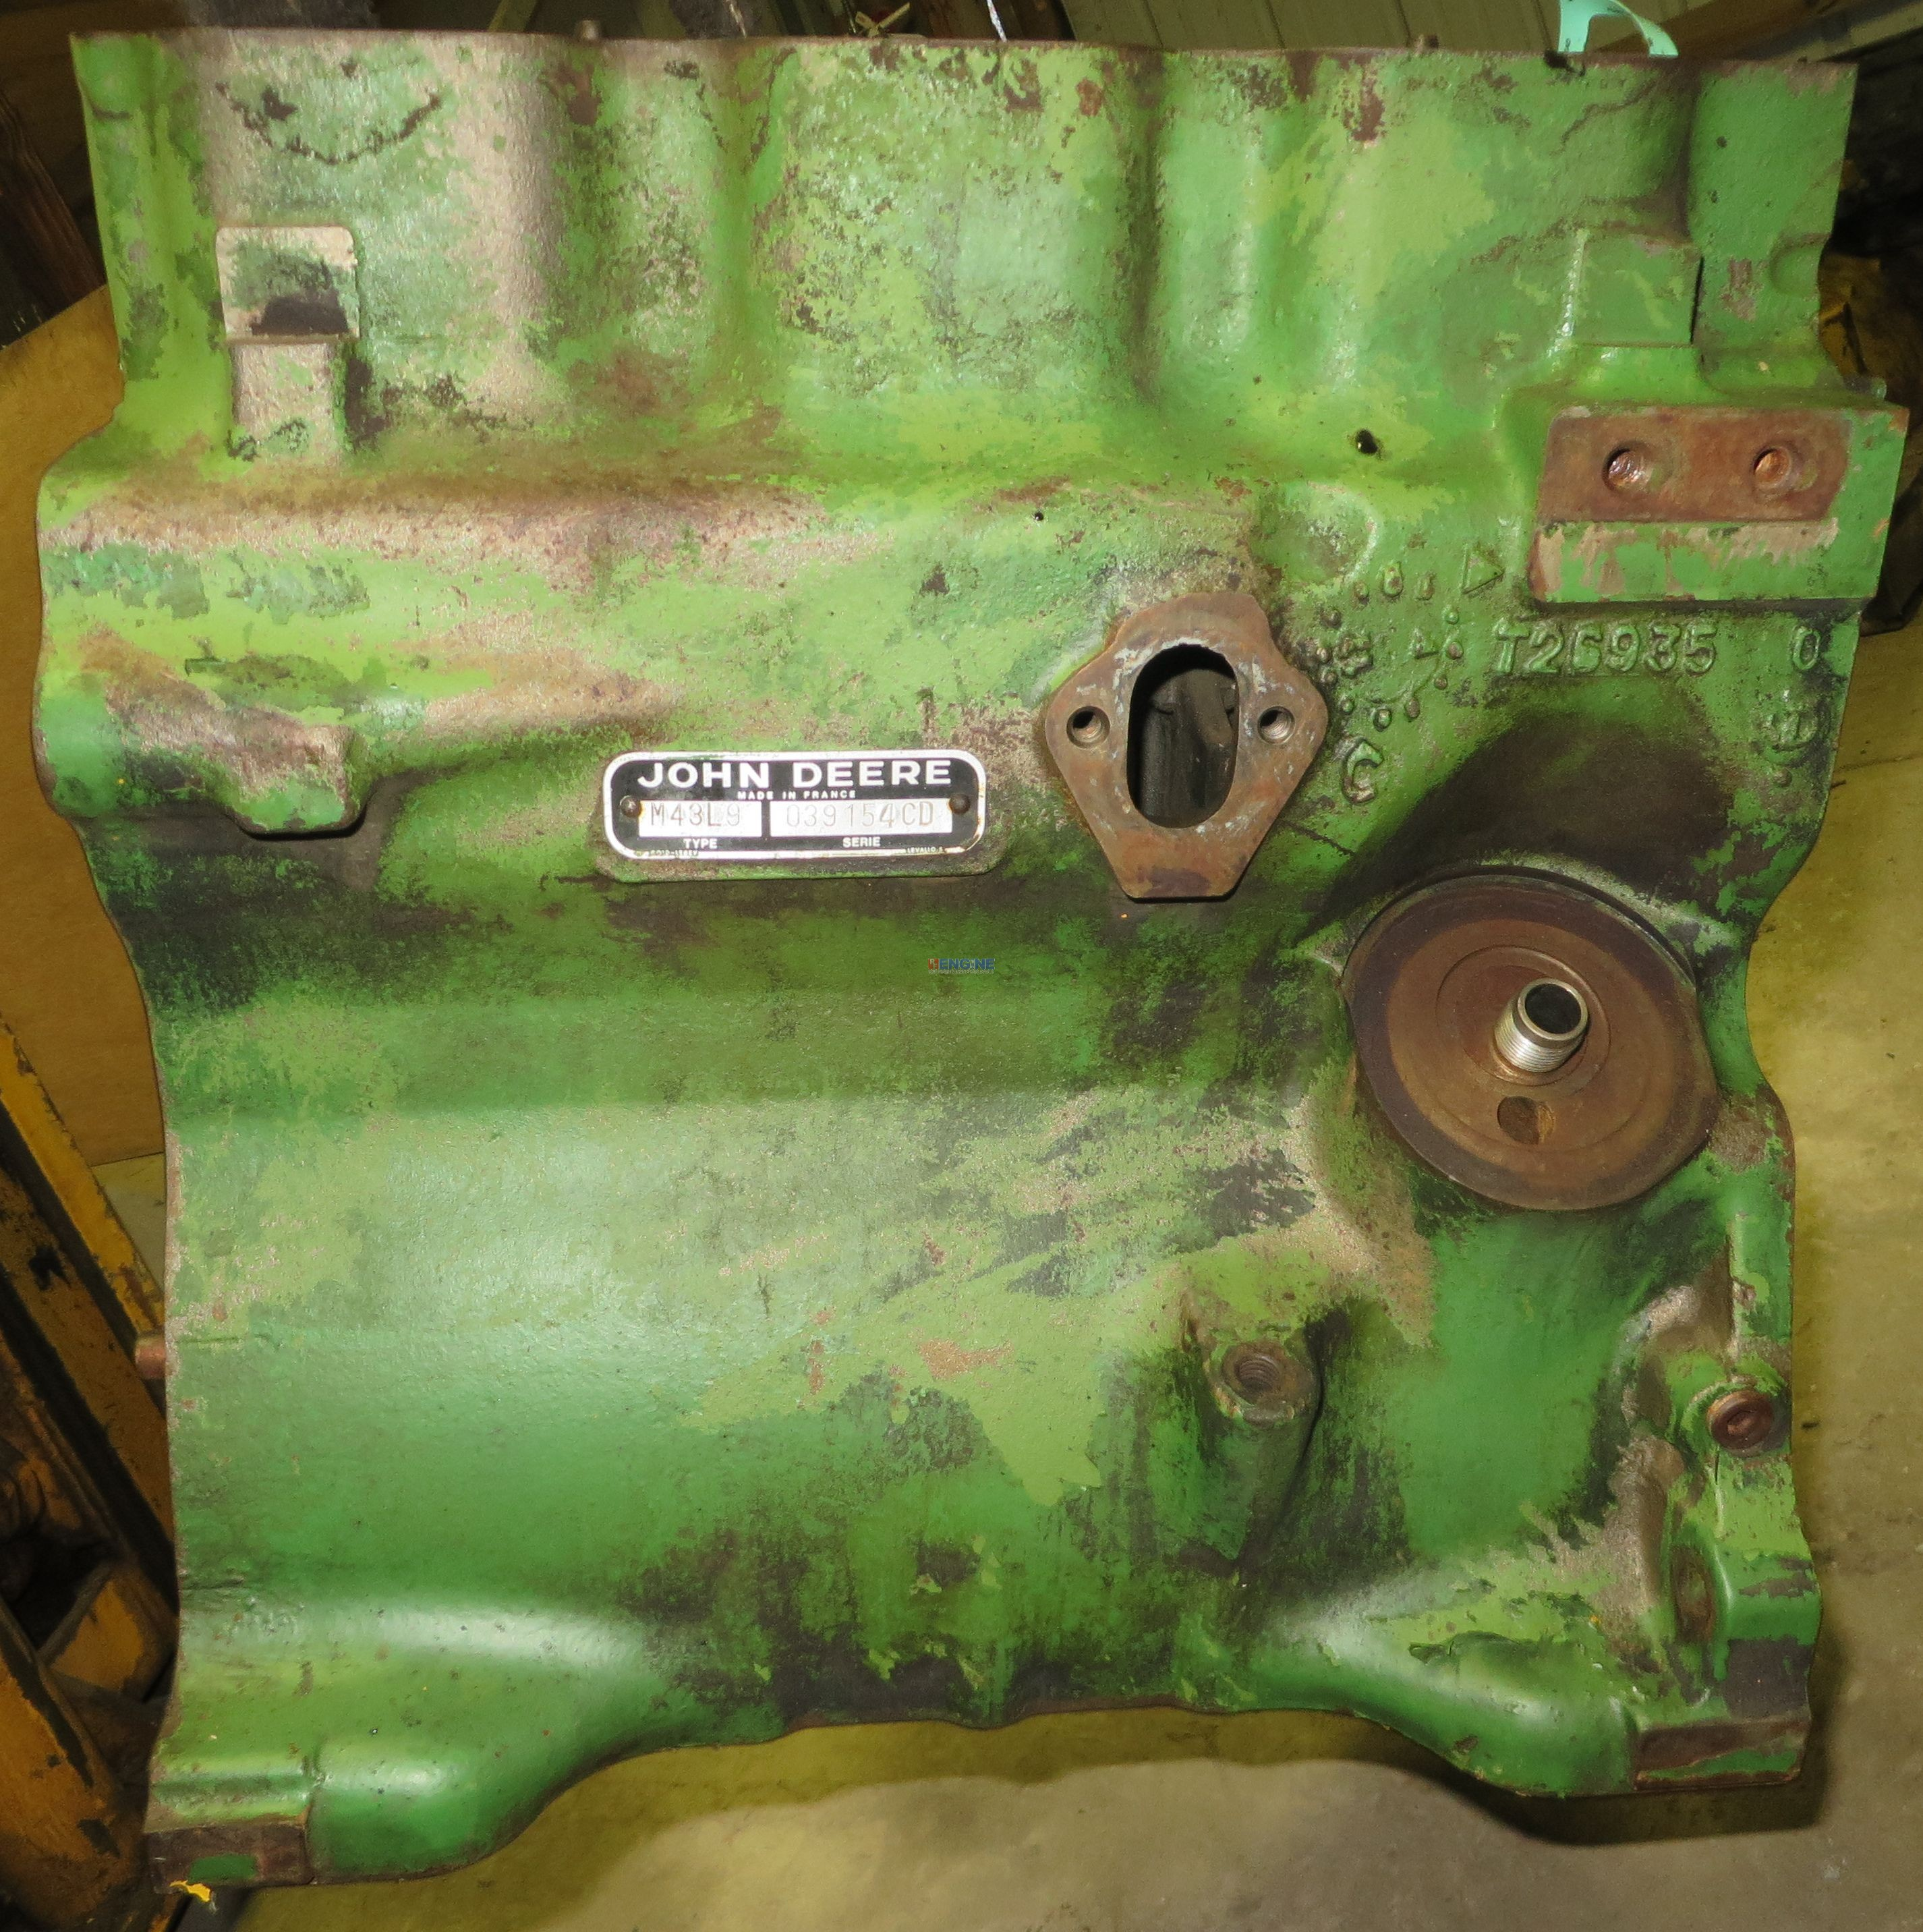 Oem Jd 1020 Wiring Harness Free Download John Deere R F Engine 3 152 Block Good Used T26935 2 Cyl For Factory Genuine